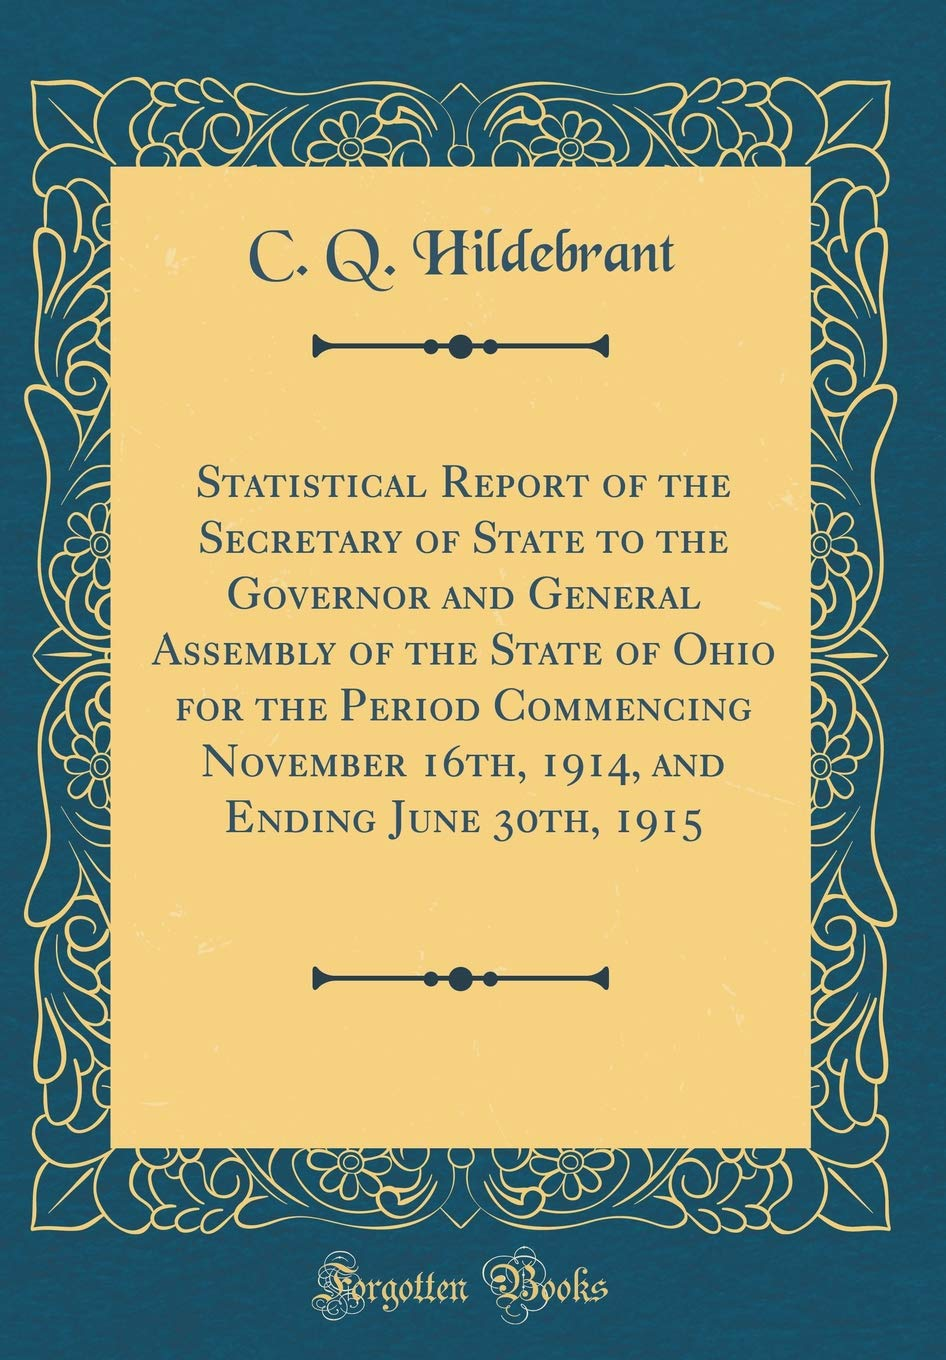 Statistical Report of the Secretary of State to the Governor and General Assembly of the State of Ohio for the Period Commencing November 16th, 1914, and Ending June 30th, 1915 (Classic Reprint) pdf